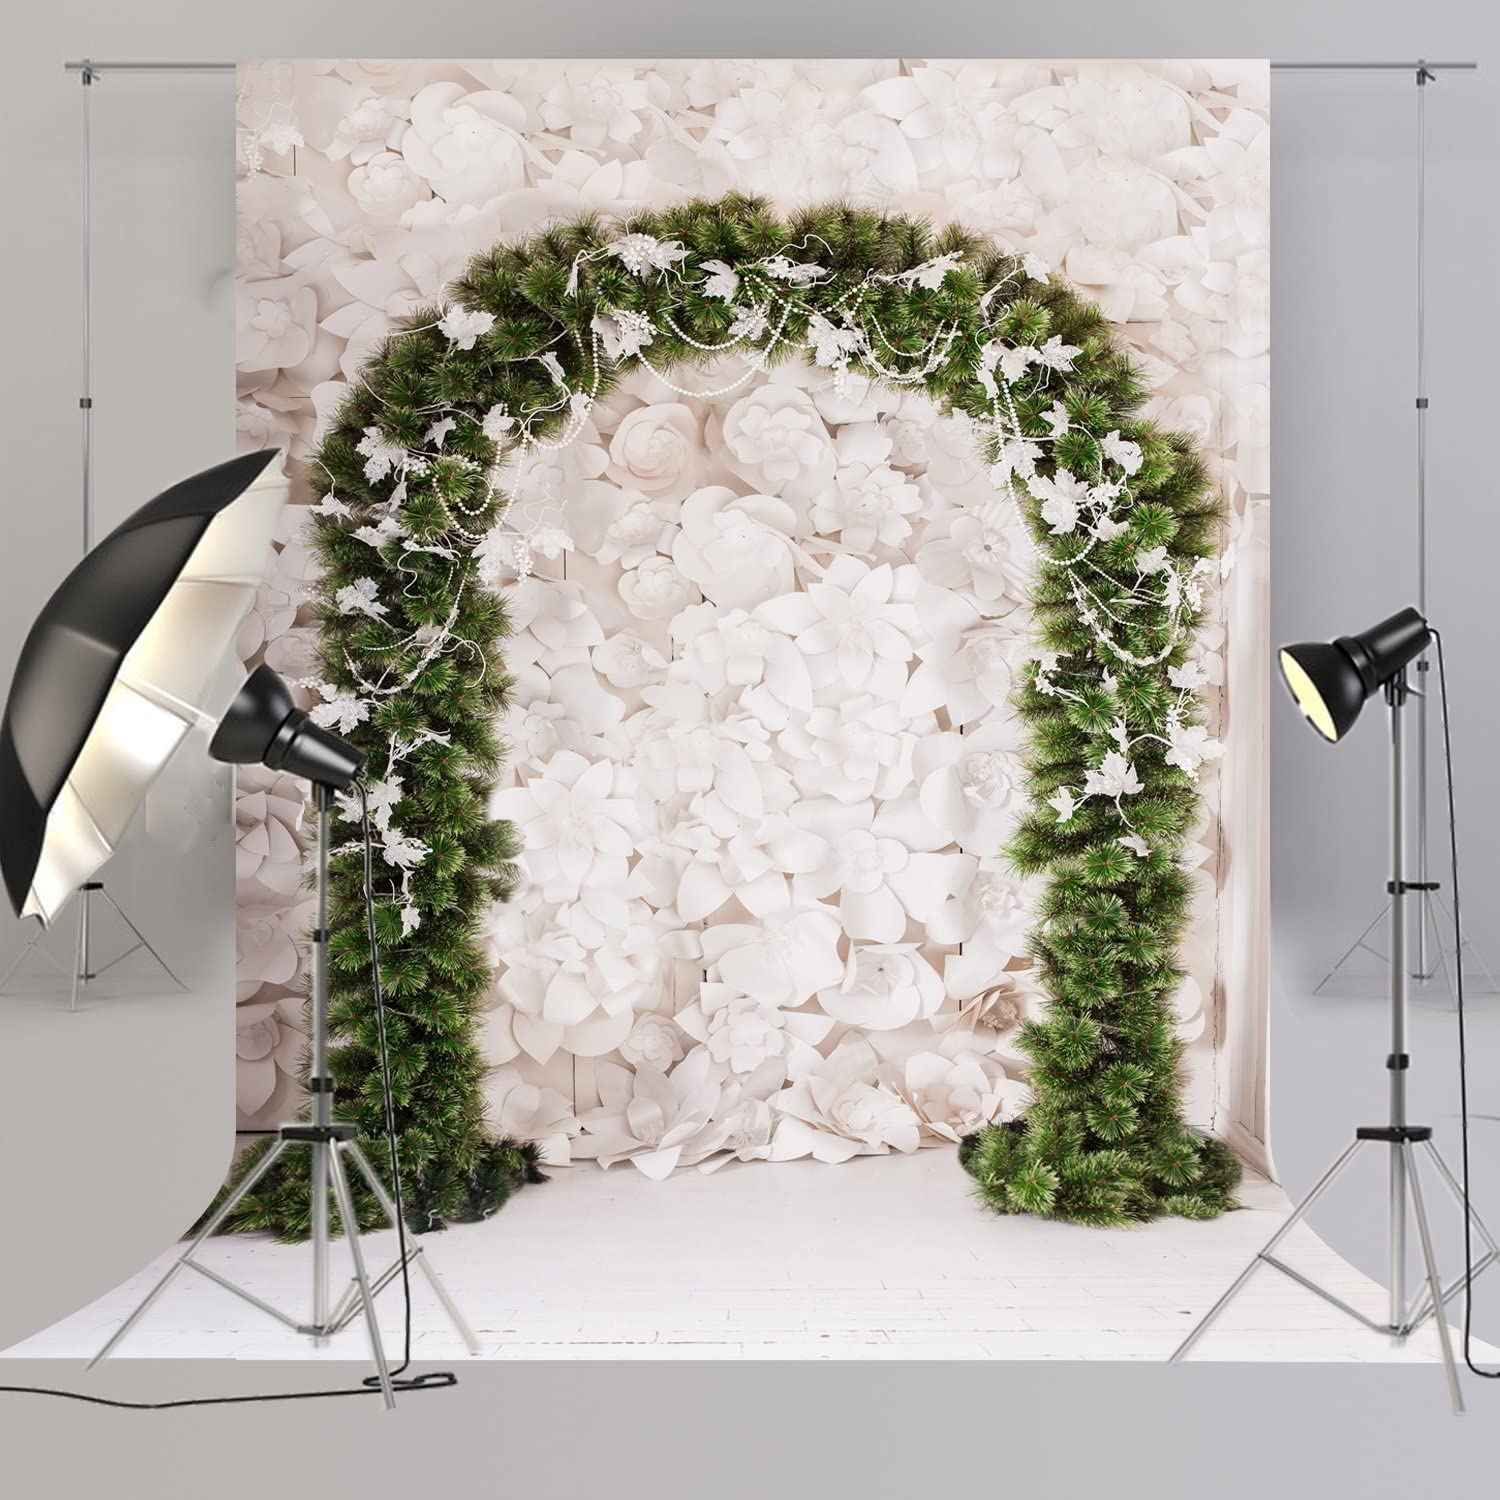 6x6FT Vinyl Photography Backdrop,Tree of Life,Heart Shaped Blossom Background for Graduation Prom Dance Decor Photo Booth Studio Prop Banner